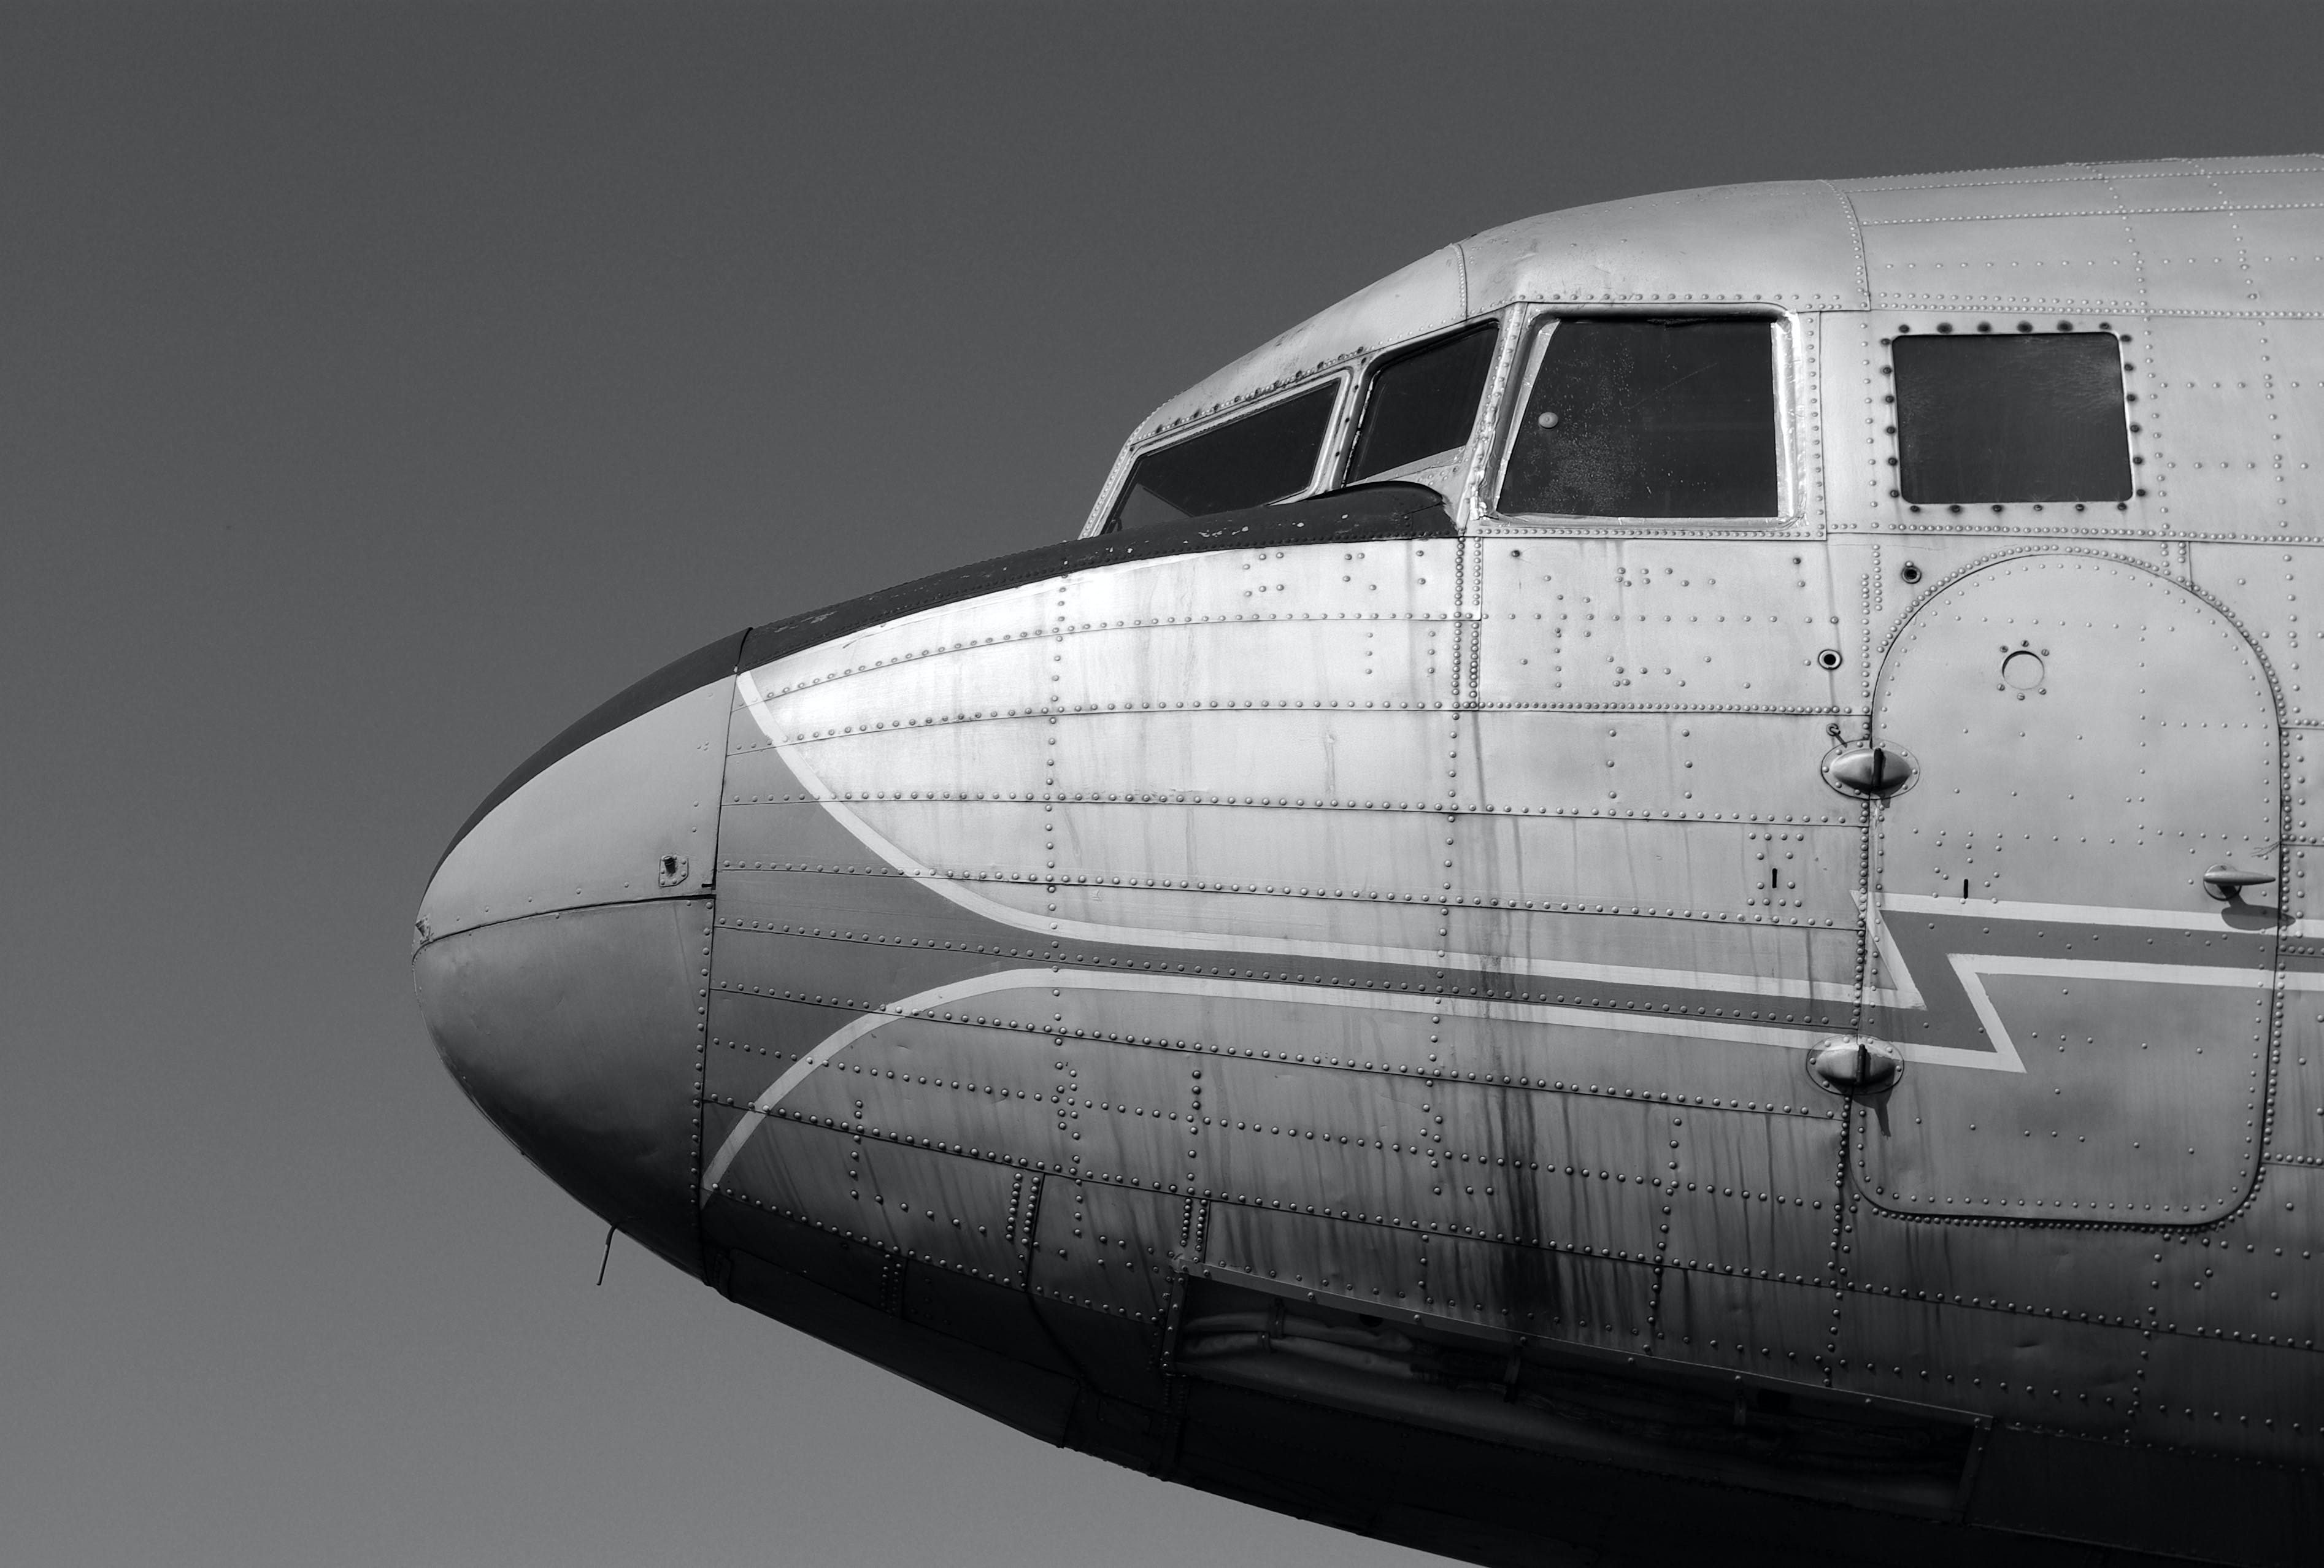 Free stock photo of airplane, black and white, Malev, vintage